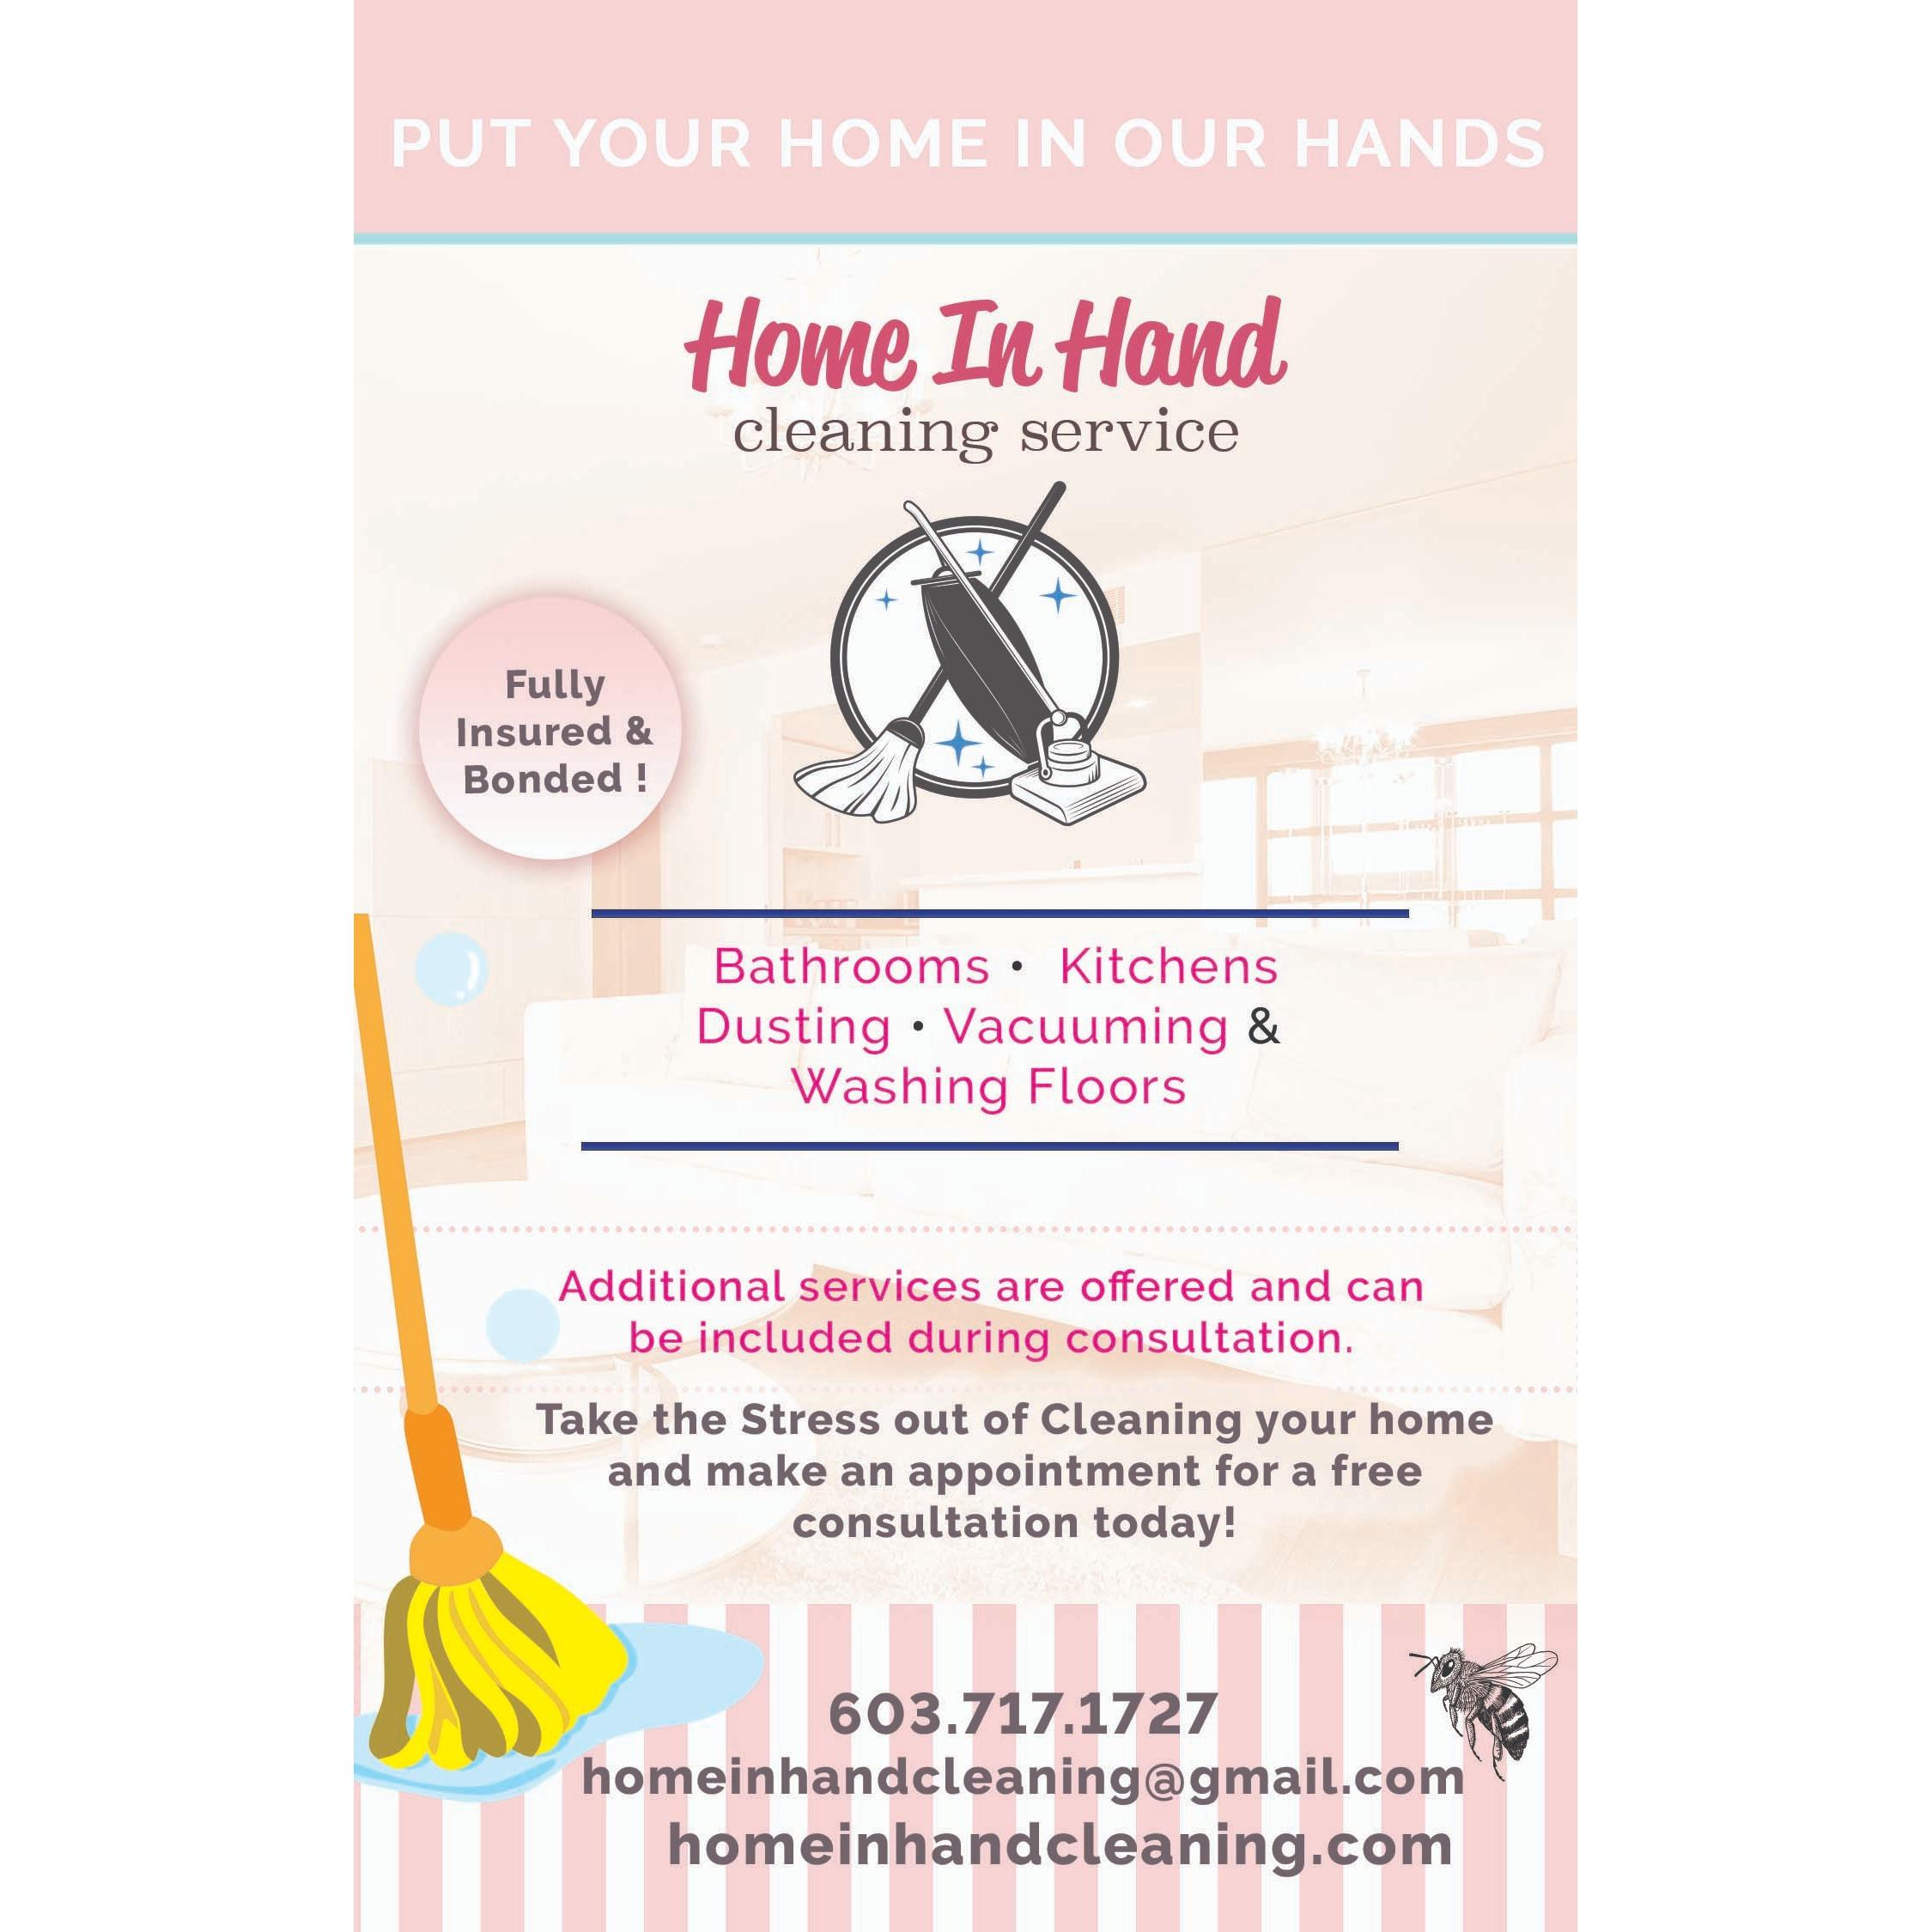 Home In Hand Cleaning Service image 3